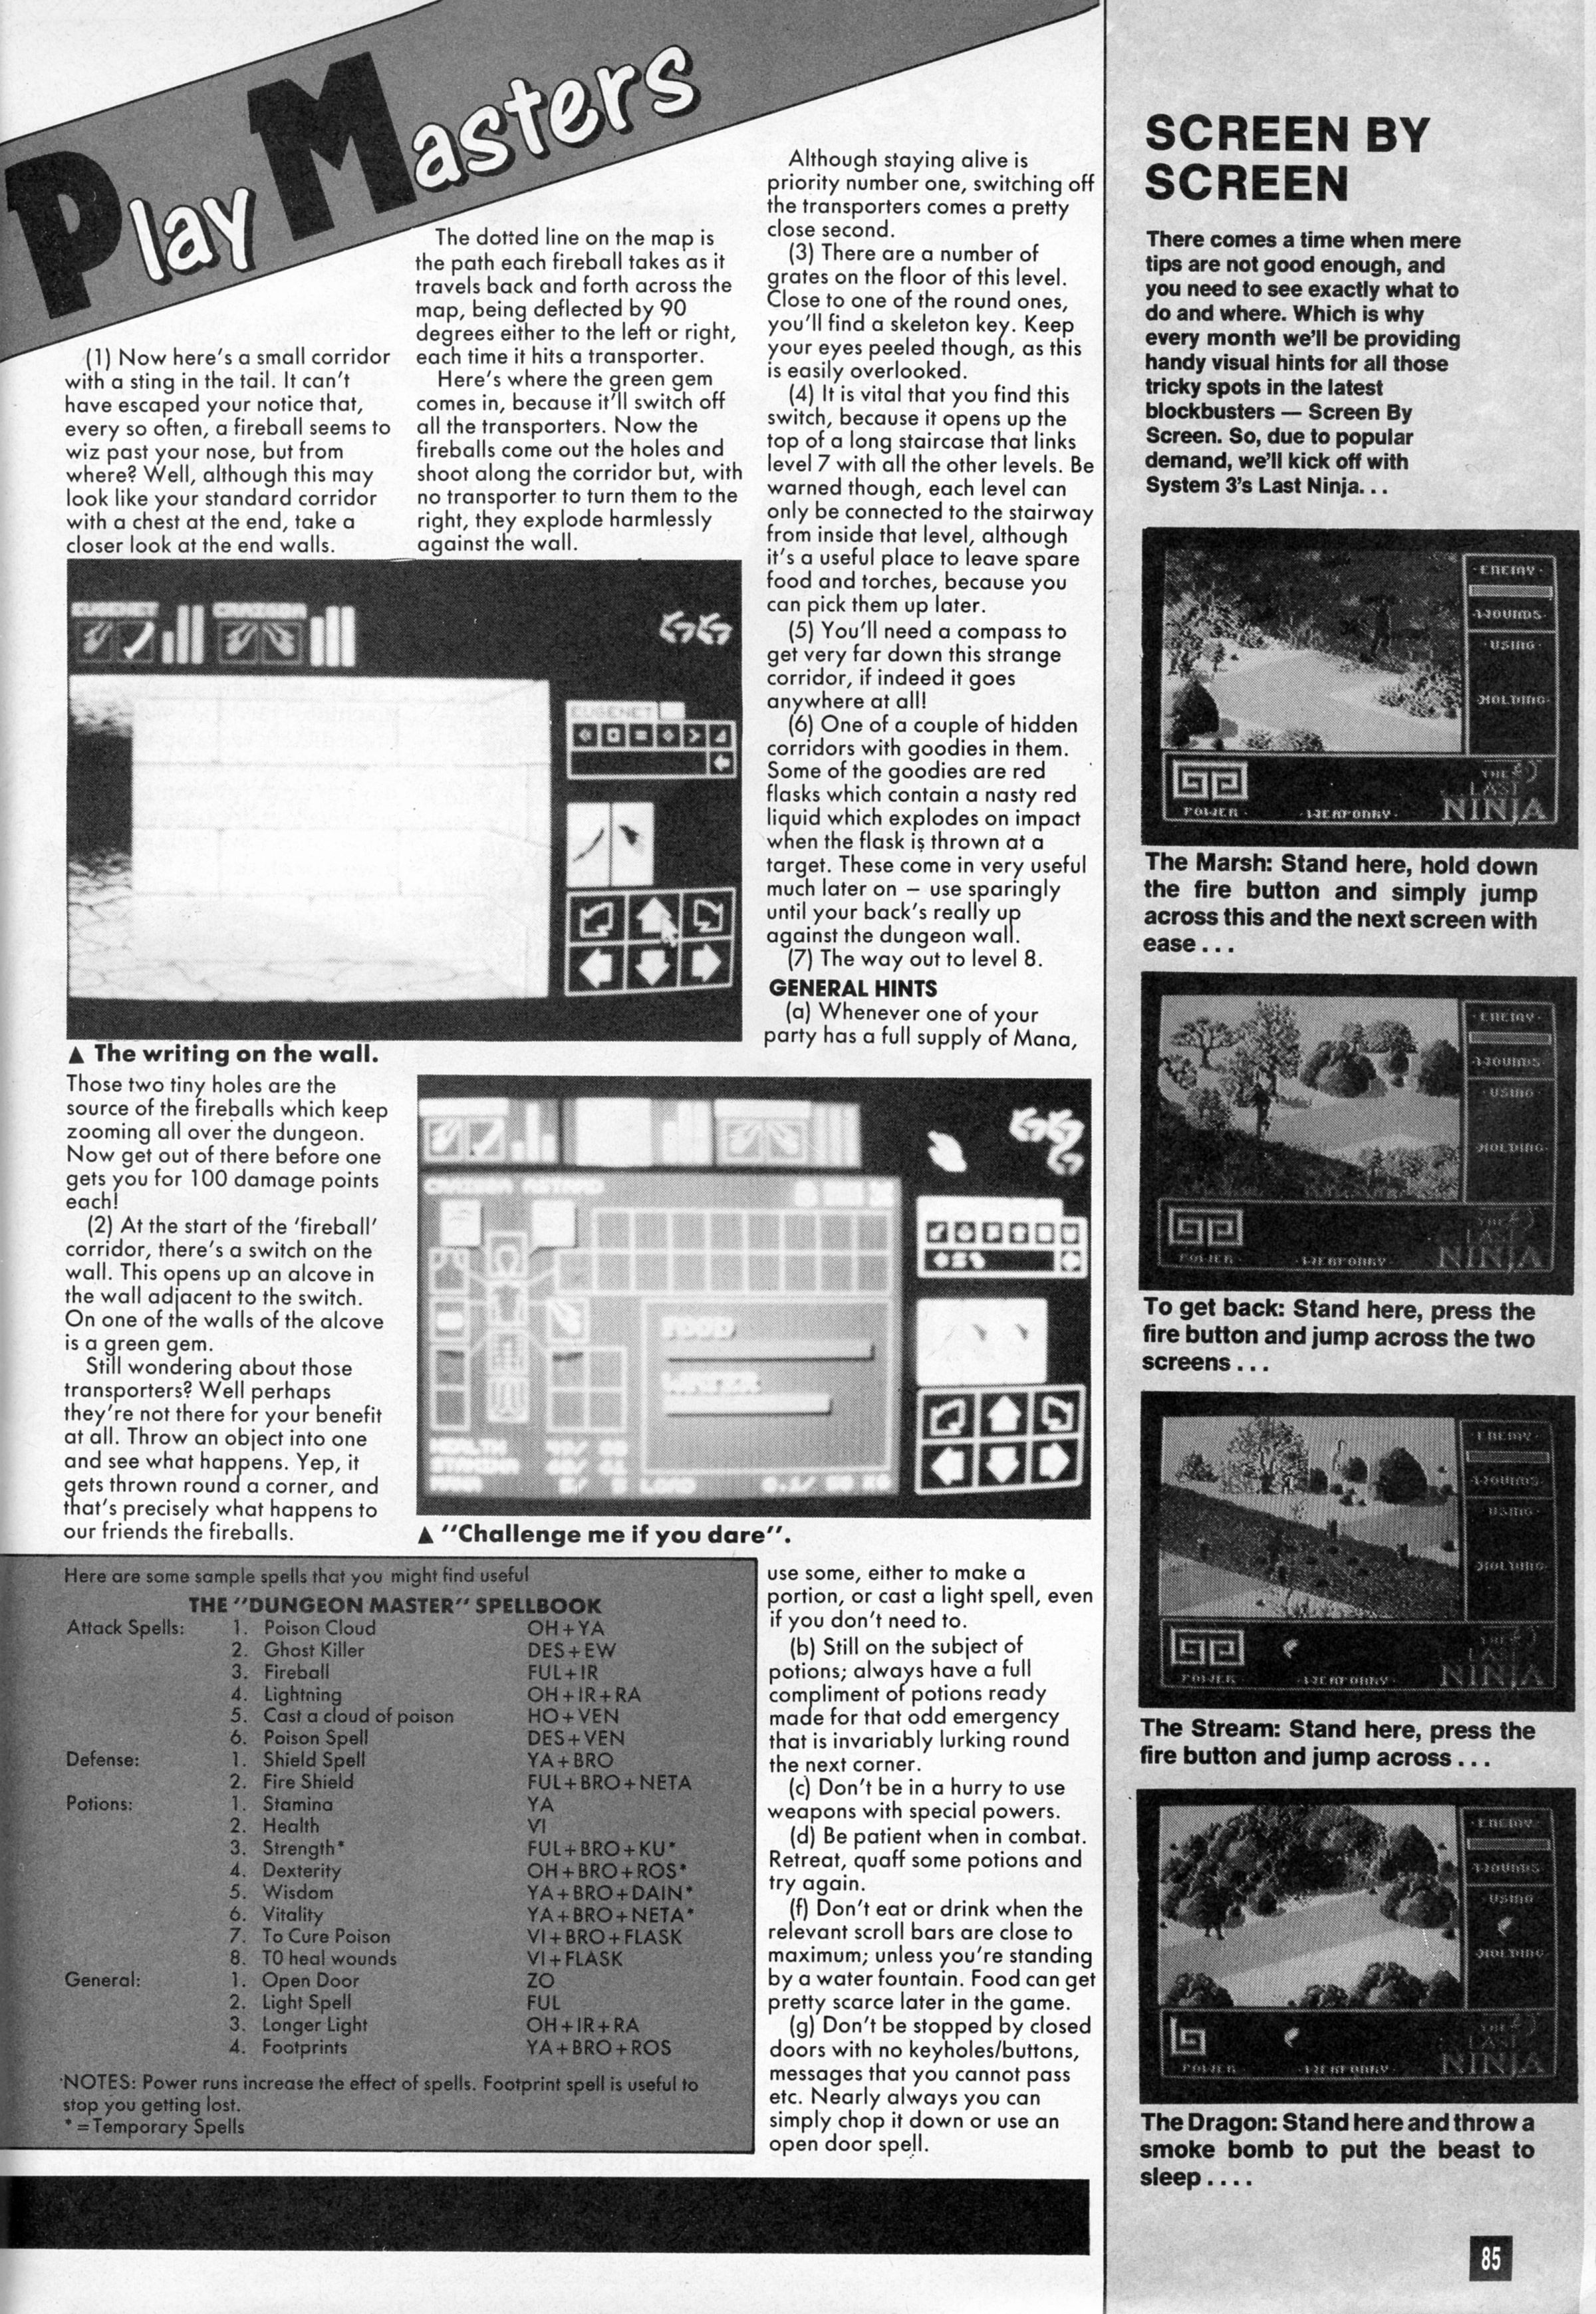 Dungeon Master Guide published in British magazine 'Computer And Video Games', Issue #81 July 1988, Page 85